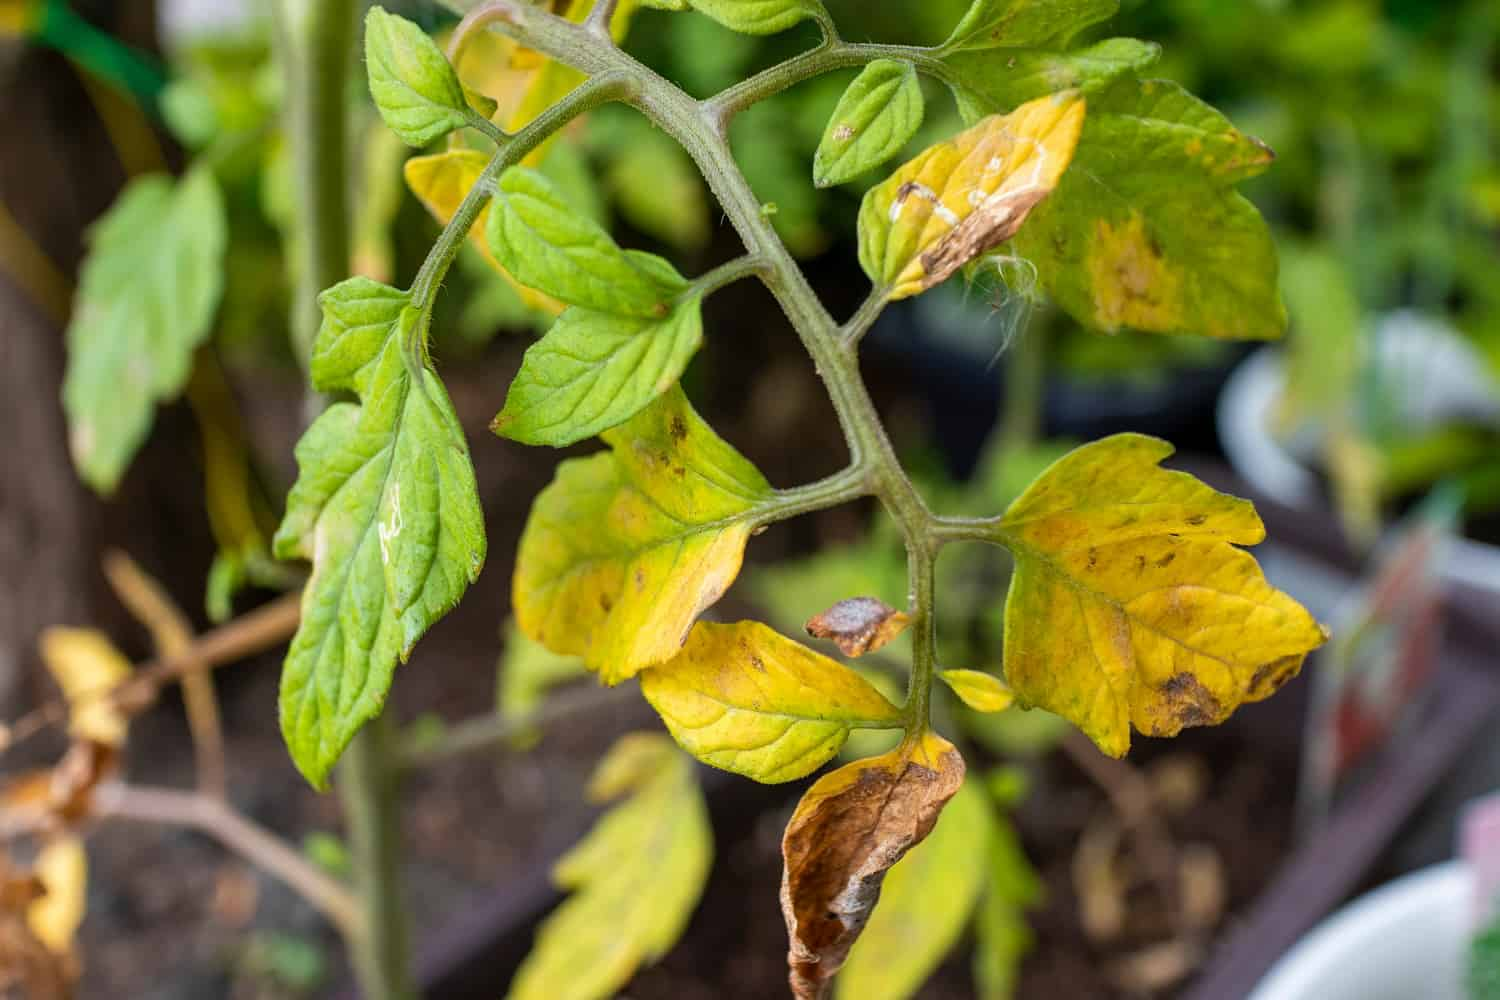 Tomato Leaves Yellowing? These Are the Reasons Why